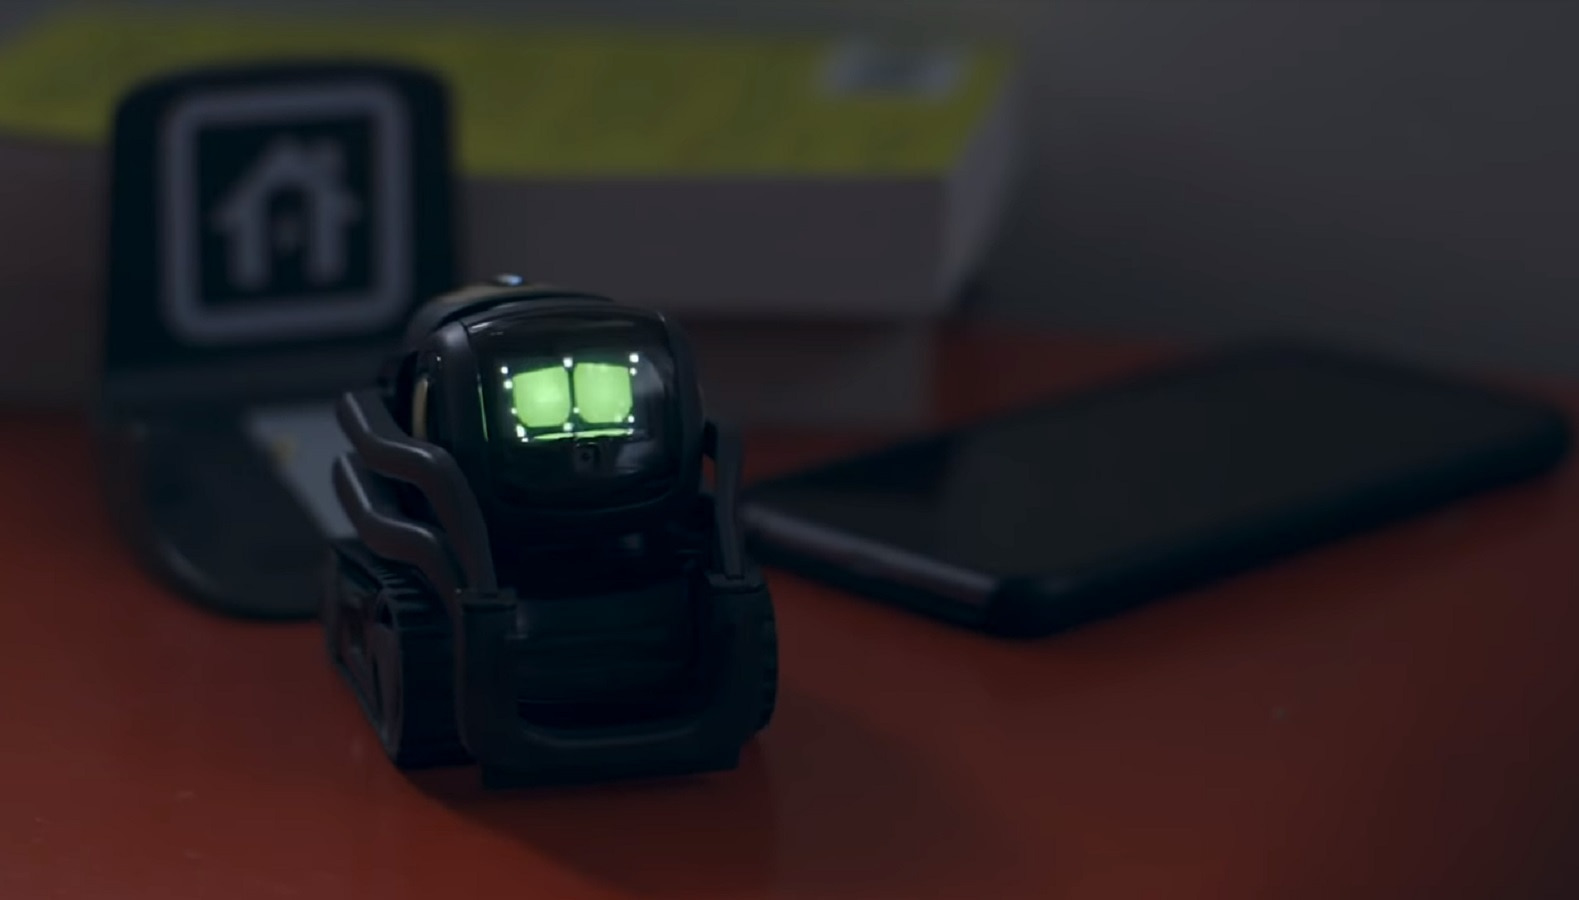 Anki's Vector robotic pal will soon be able to control your